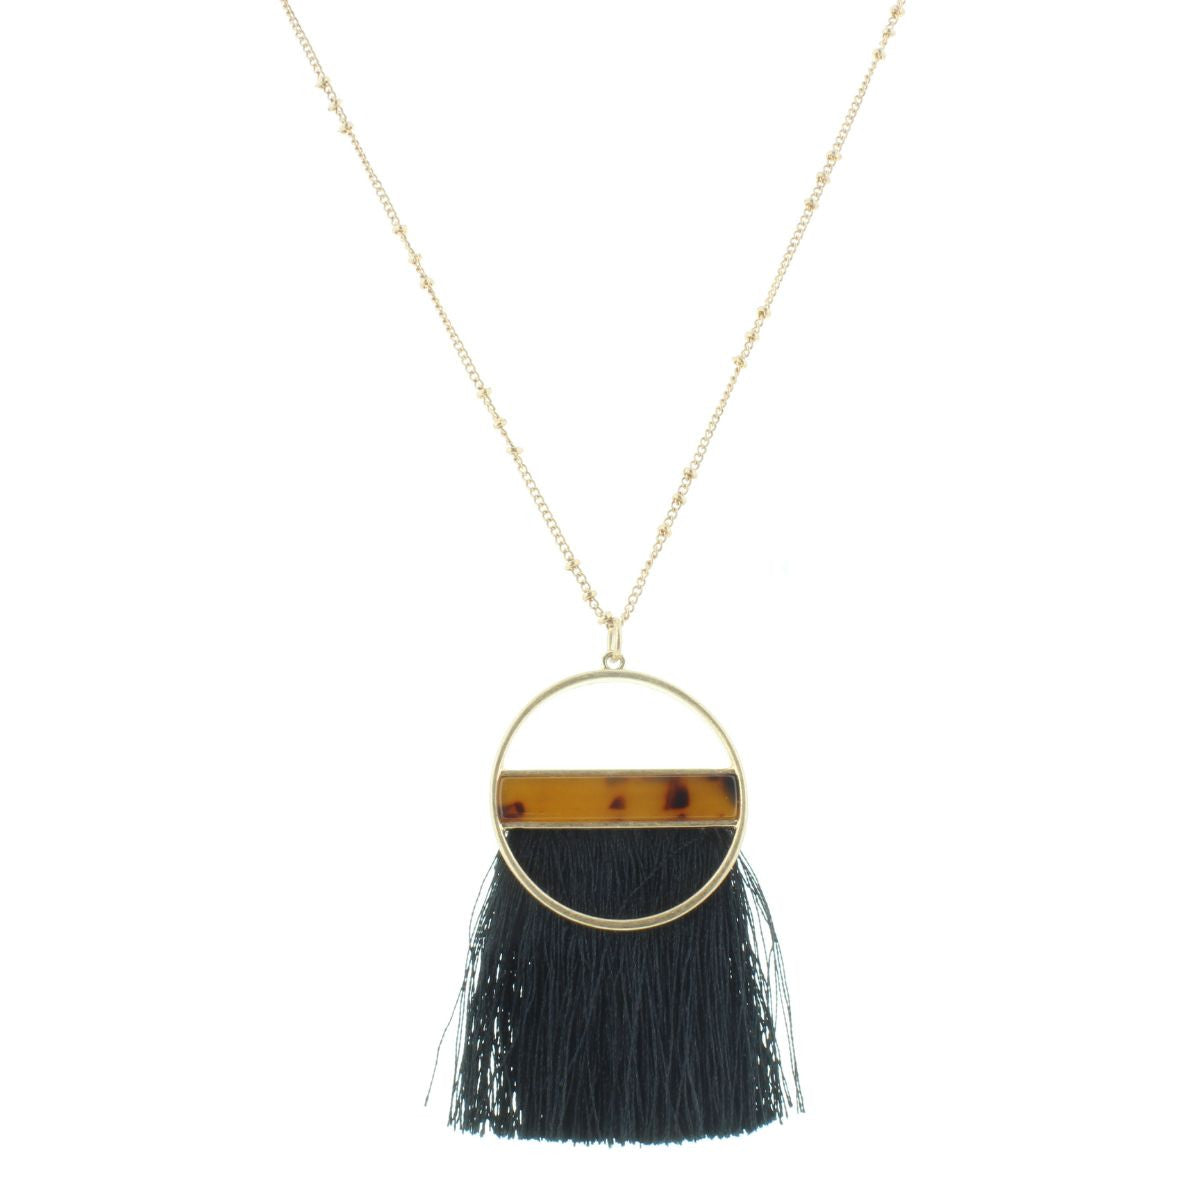 RAMONA NECKLACE